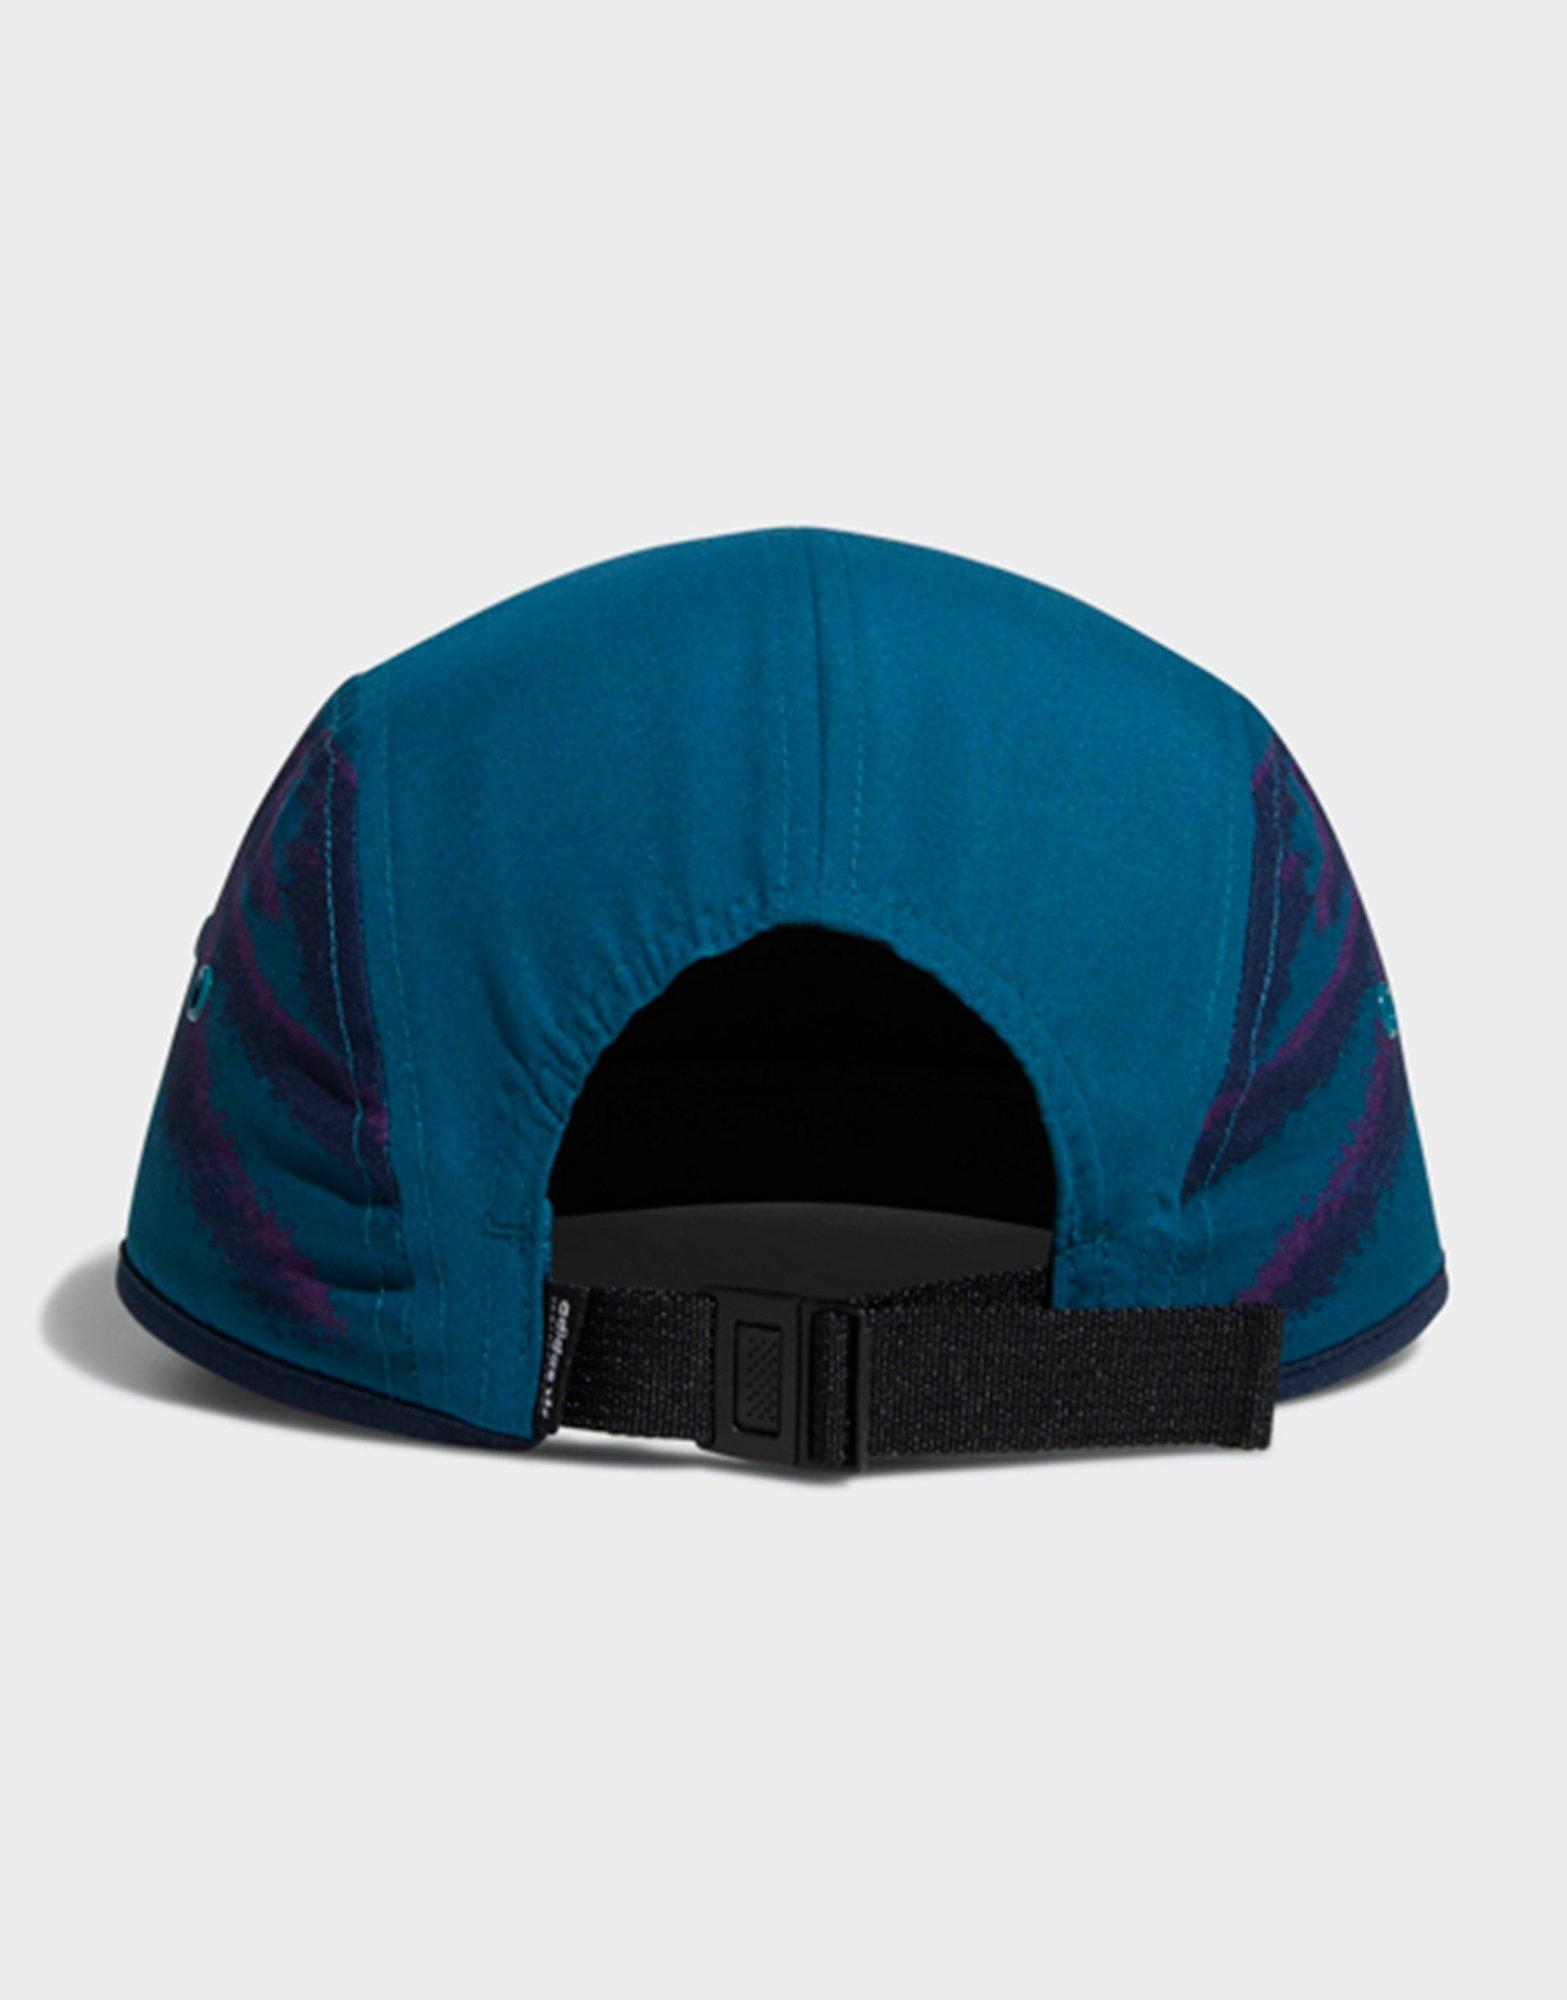 ab3849a6d7c Adidas Five-panel Court Cap in Blue - Lyst